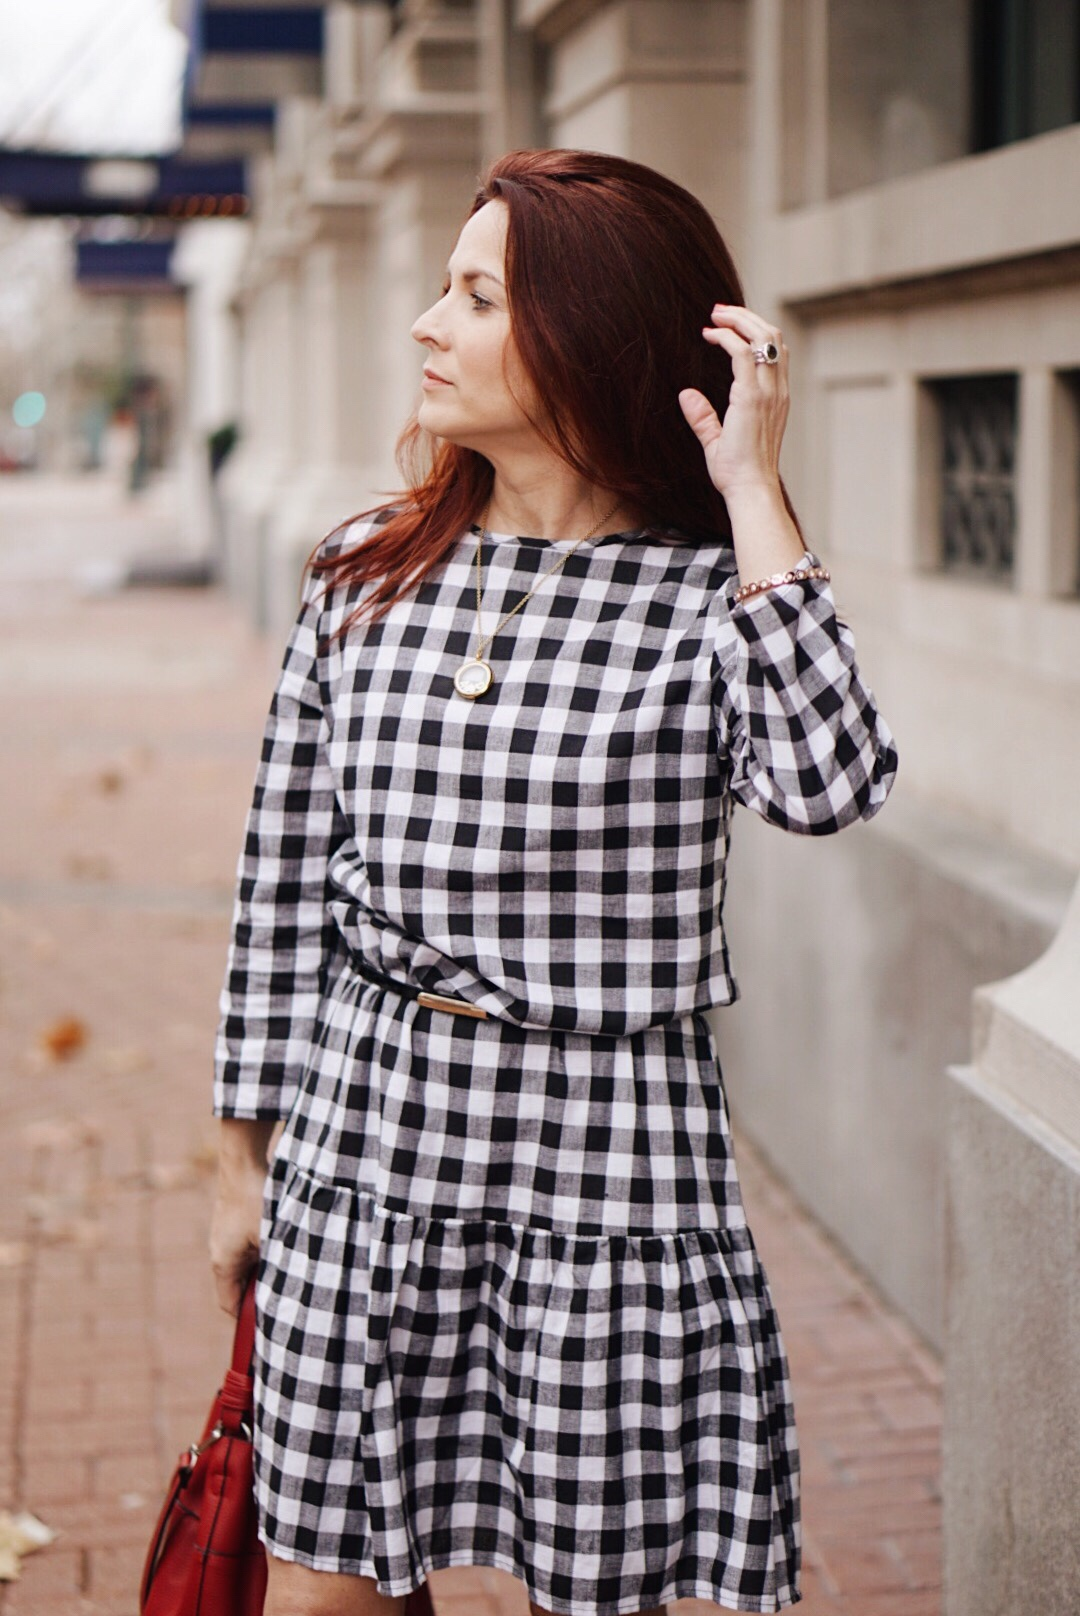 valnetines outfits, red bags, black and white checked dress, black skinny belt